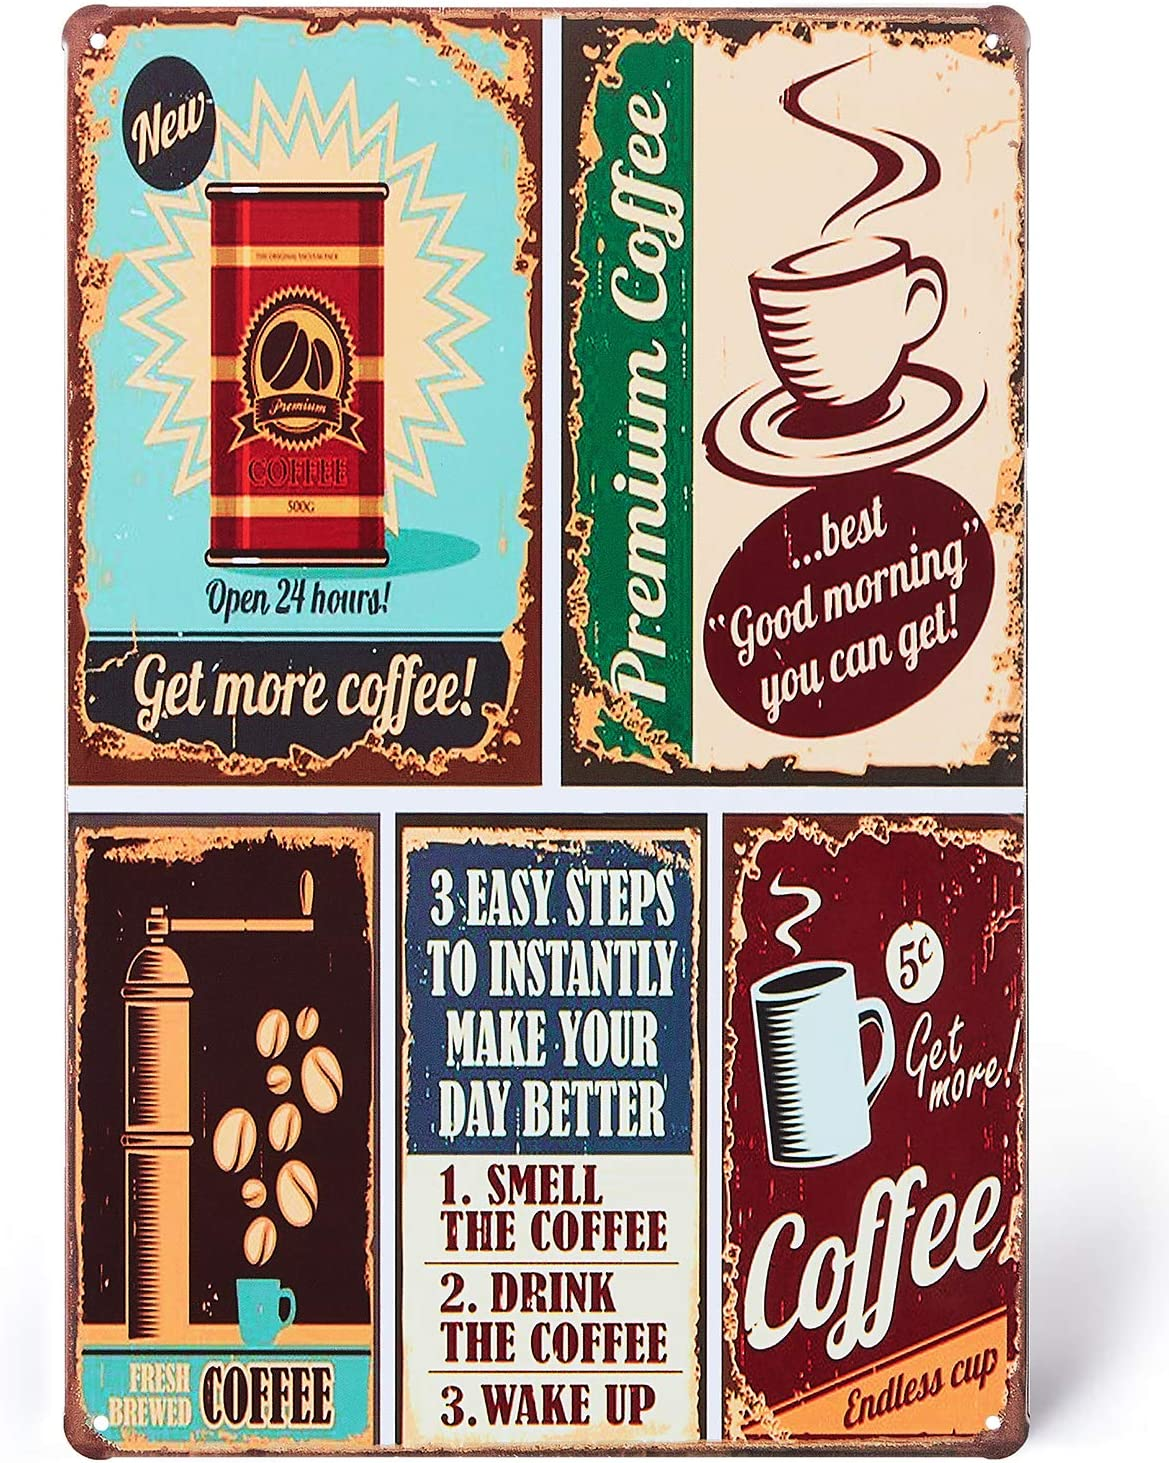 UNIQUELOVER Coffee Signs, Premium Coffee Time Vintage Retro Metal Tin Signs Kitchen Home Bar Decor 8 X 12 Inches, Small